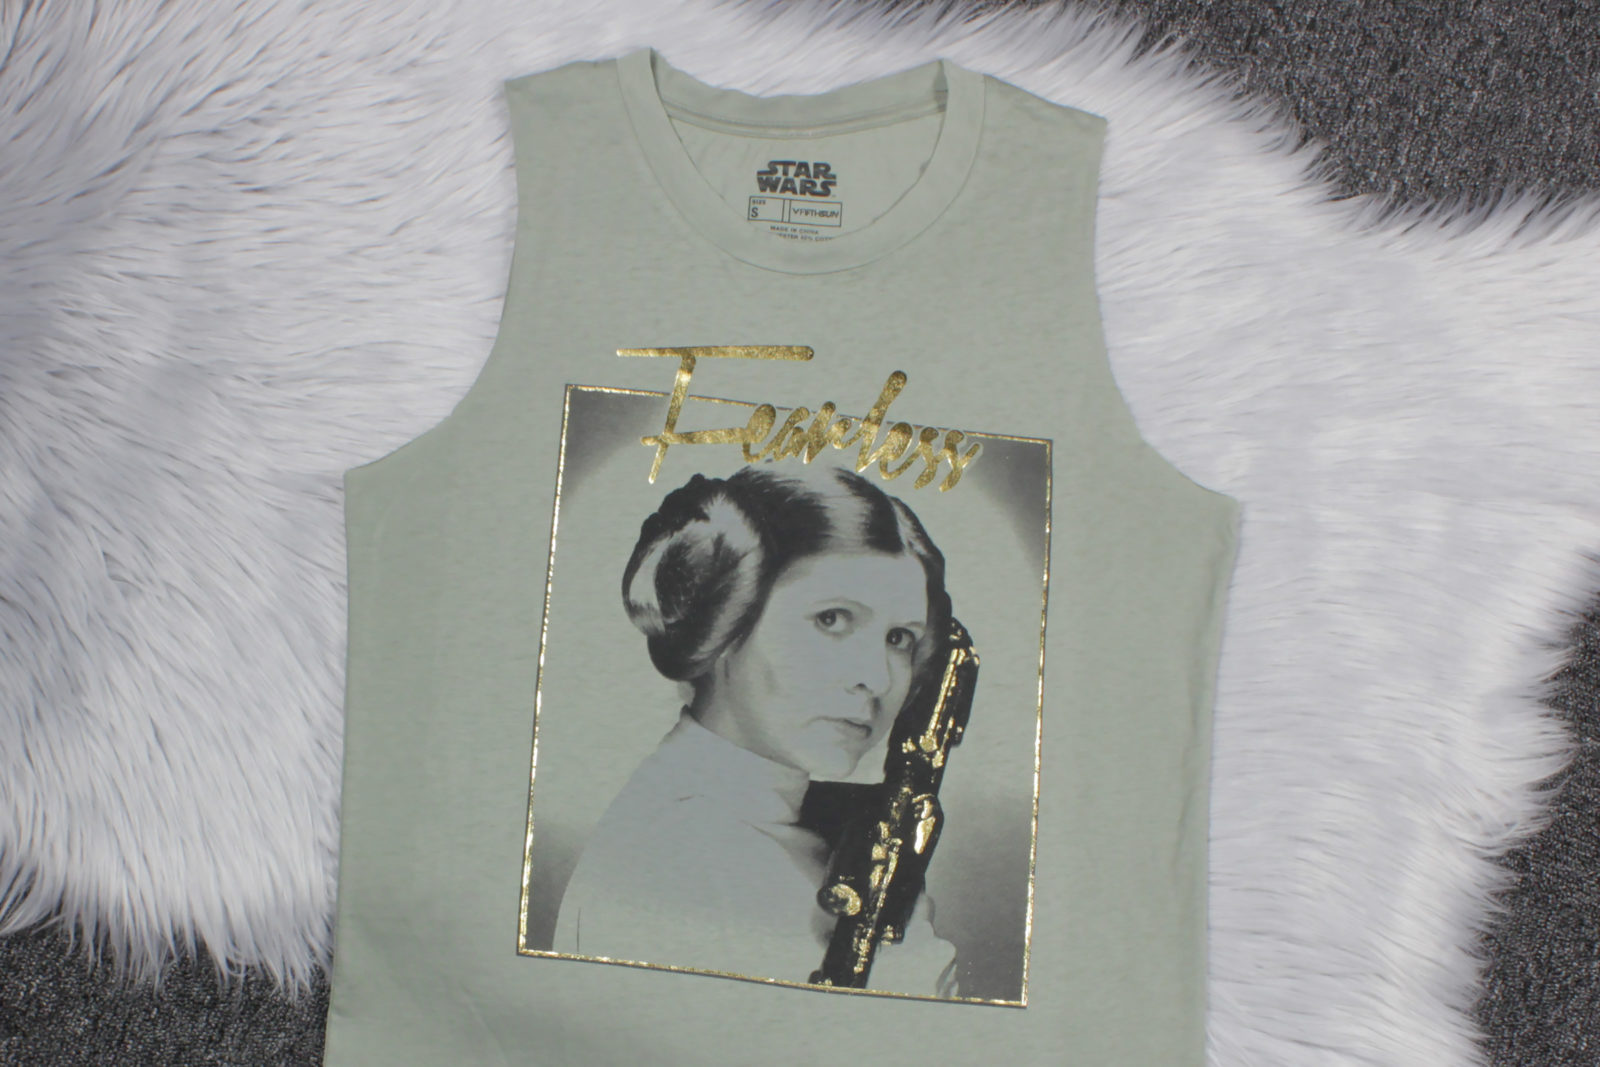 Star Wars Princess Leia Tank Top by Fifth Sun